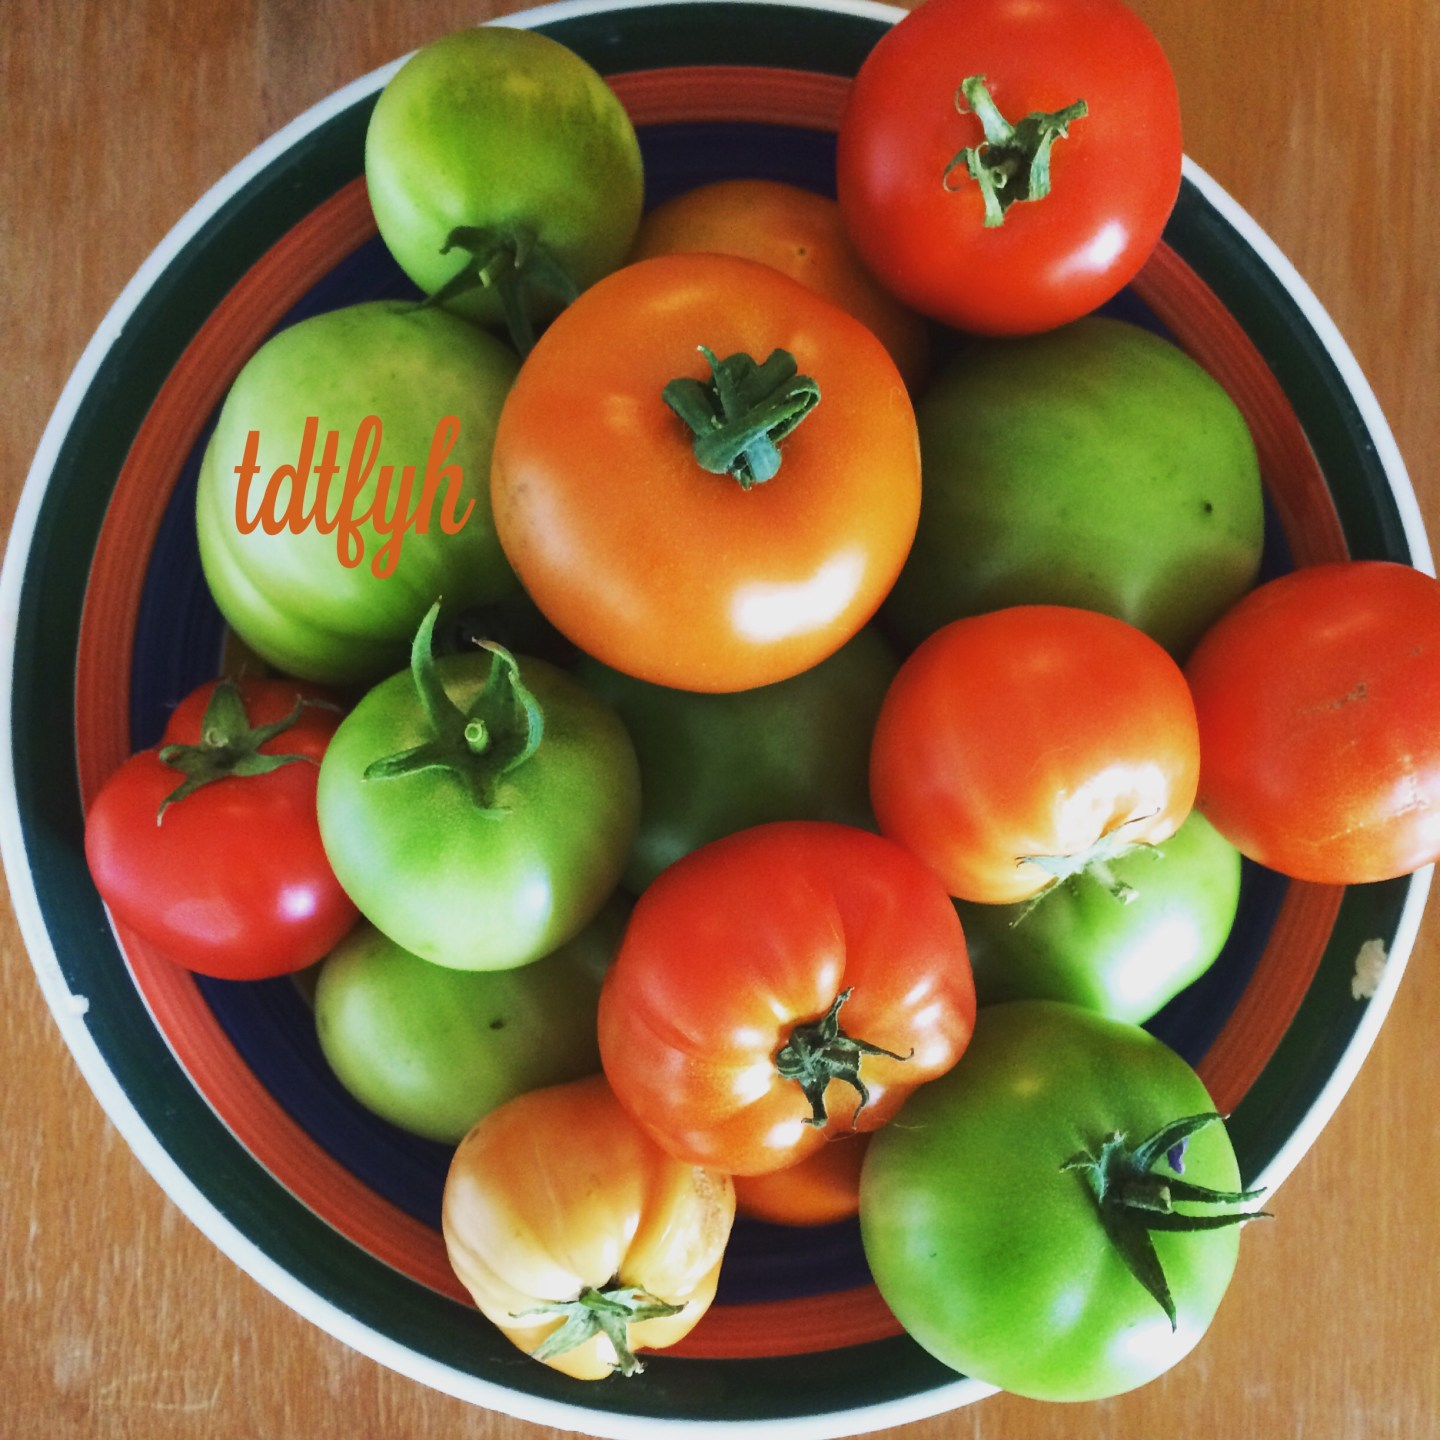 Growing a green thumb: tomatoes